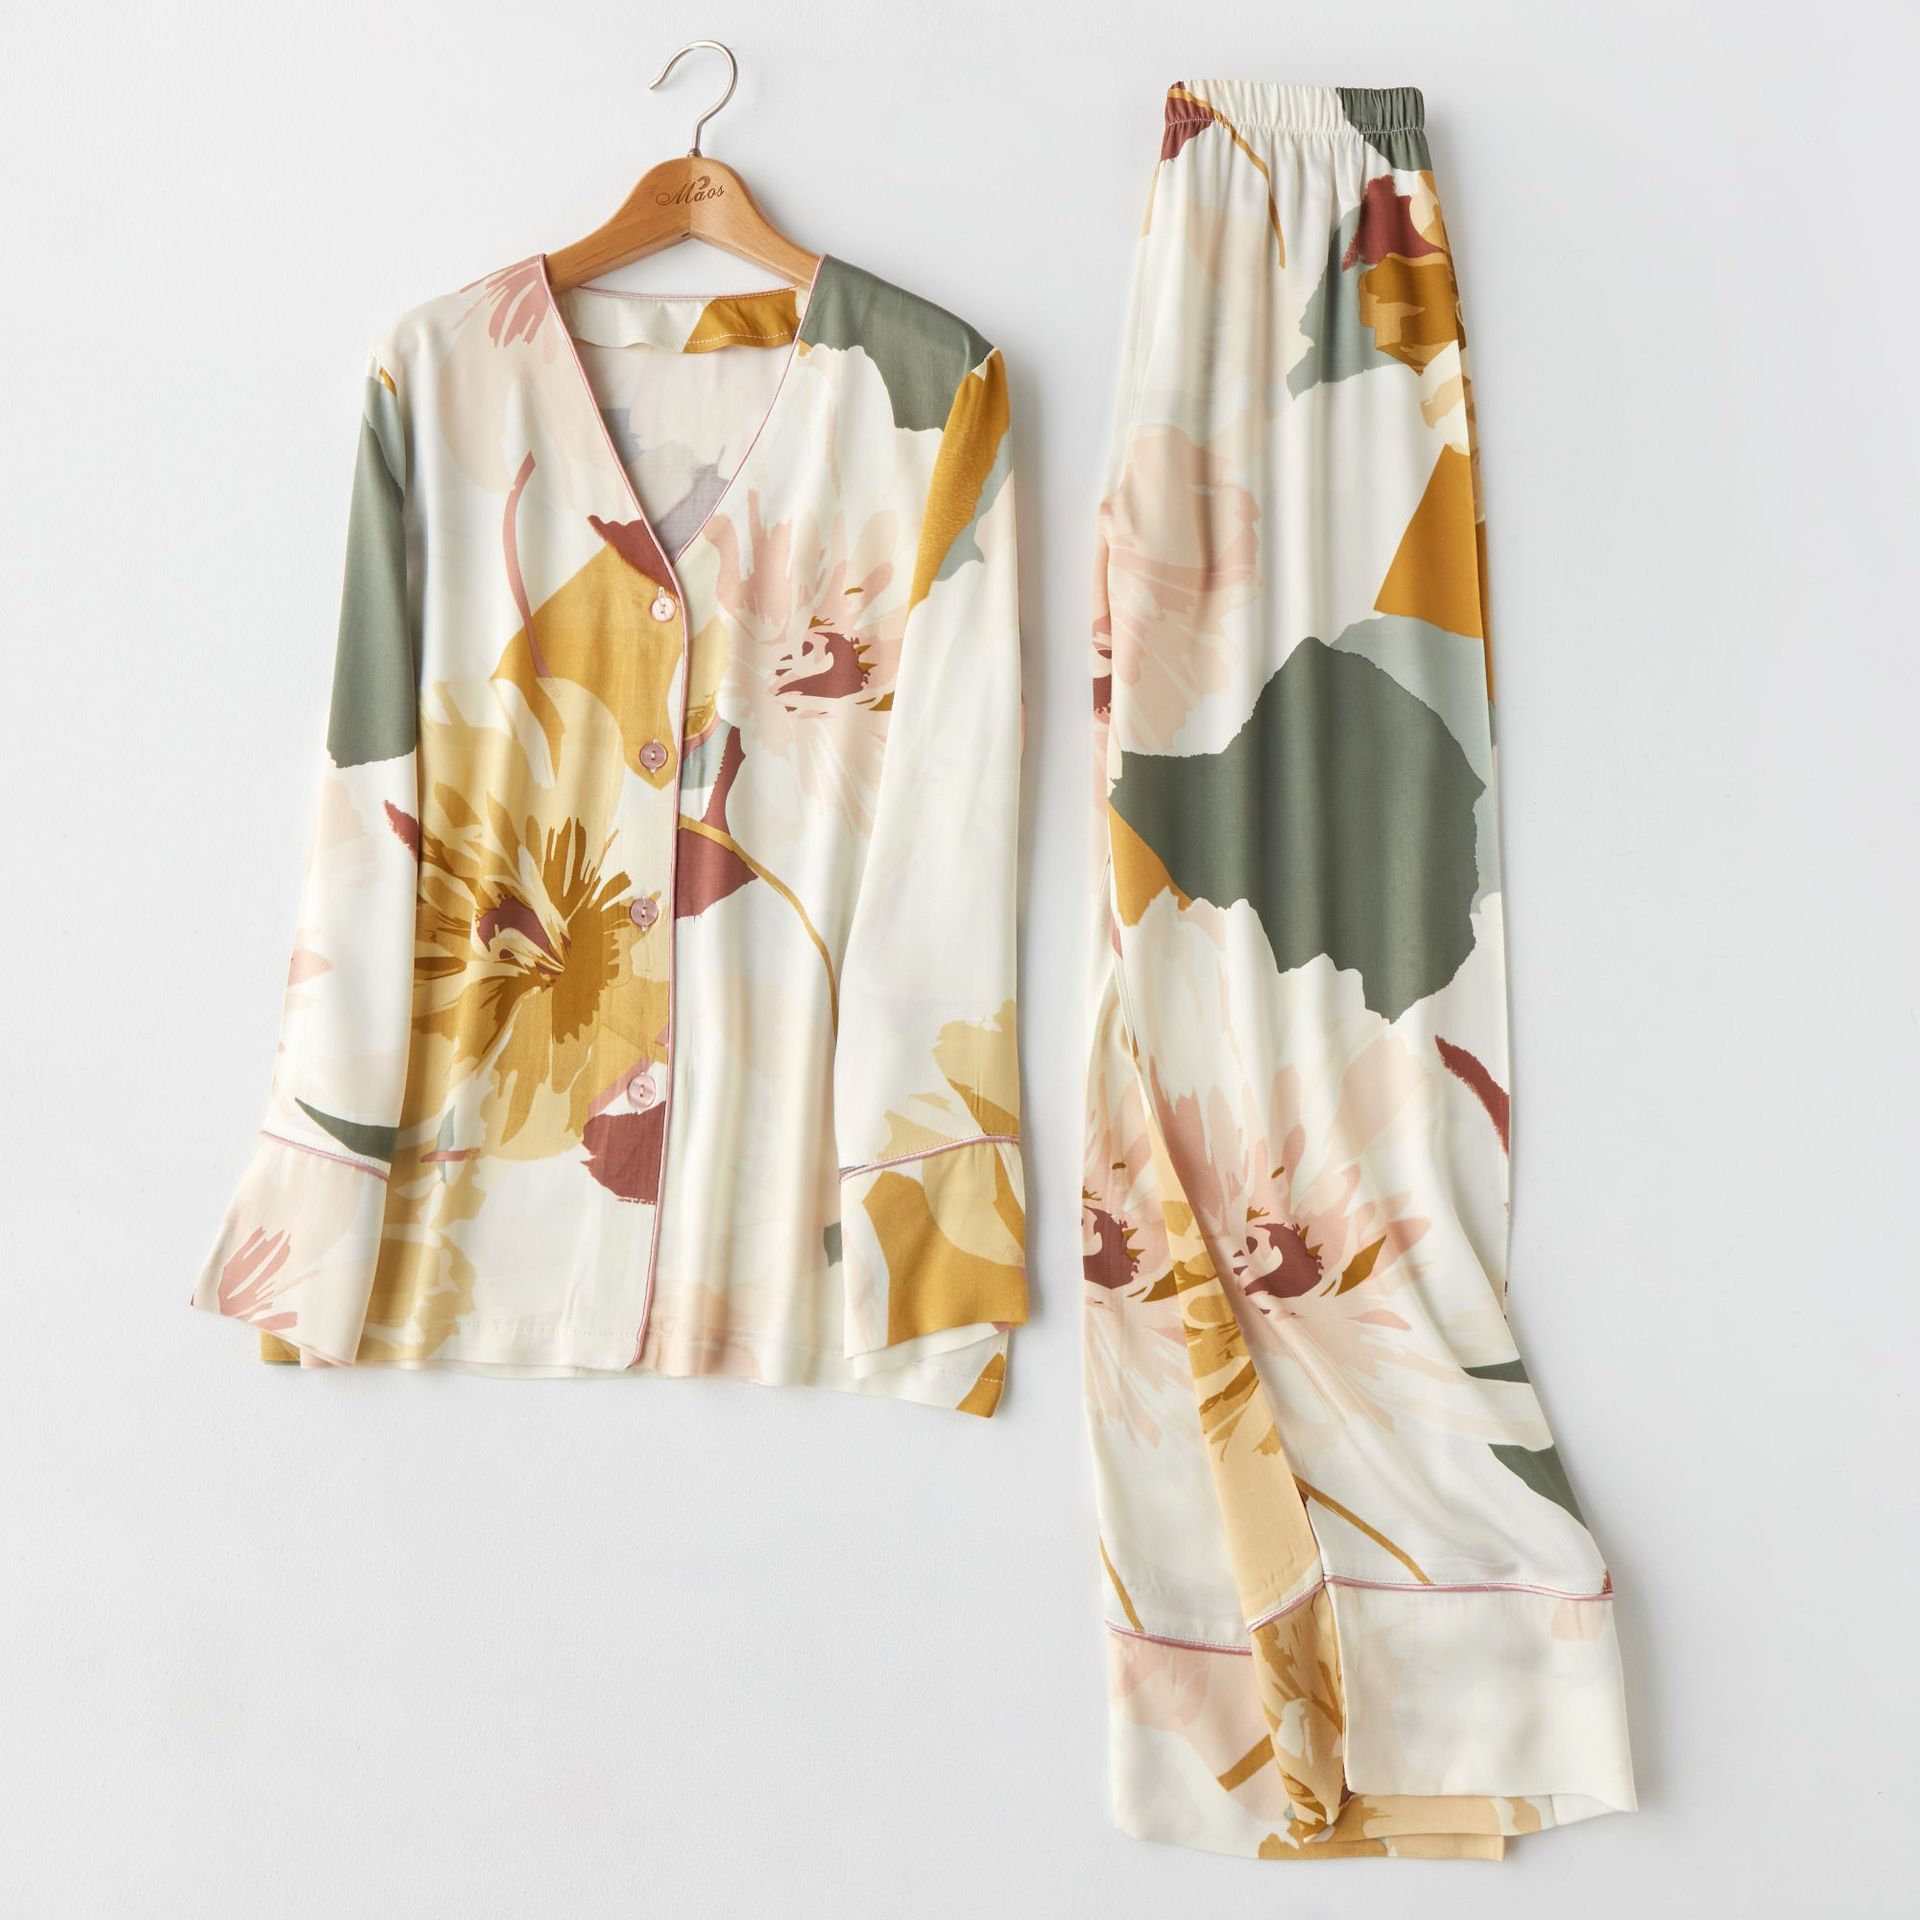 2019 Autumn New Womens Pajamas Palm Leaf Printing Pijamas Short Sleeve Pants Pyjamas Loungewear Sexy Sleepwear Home Sleep Set